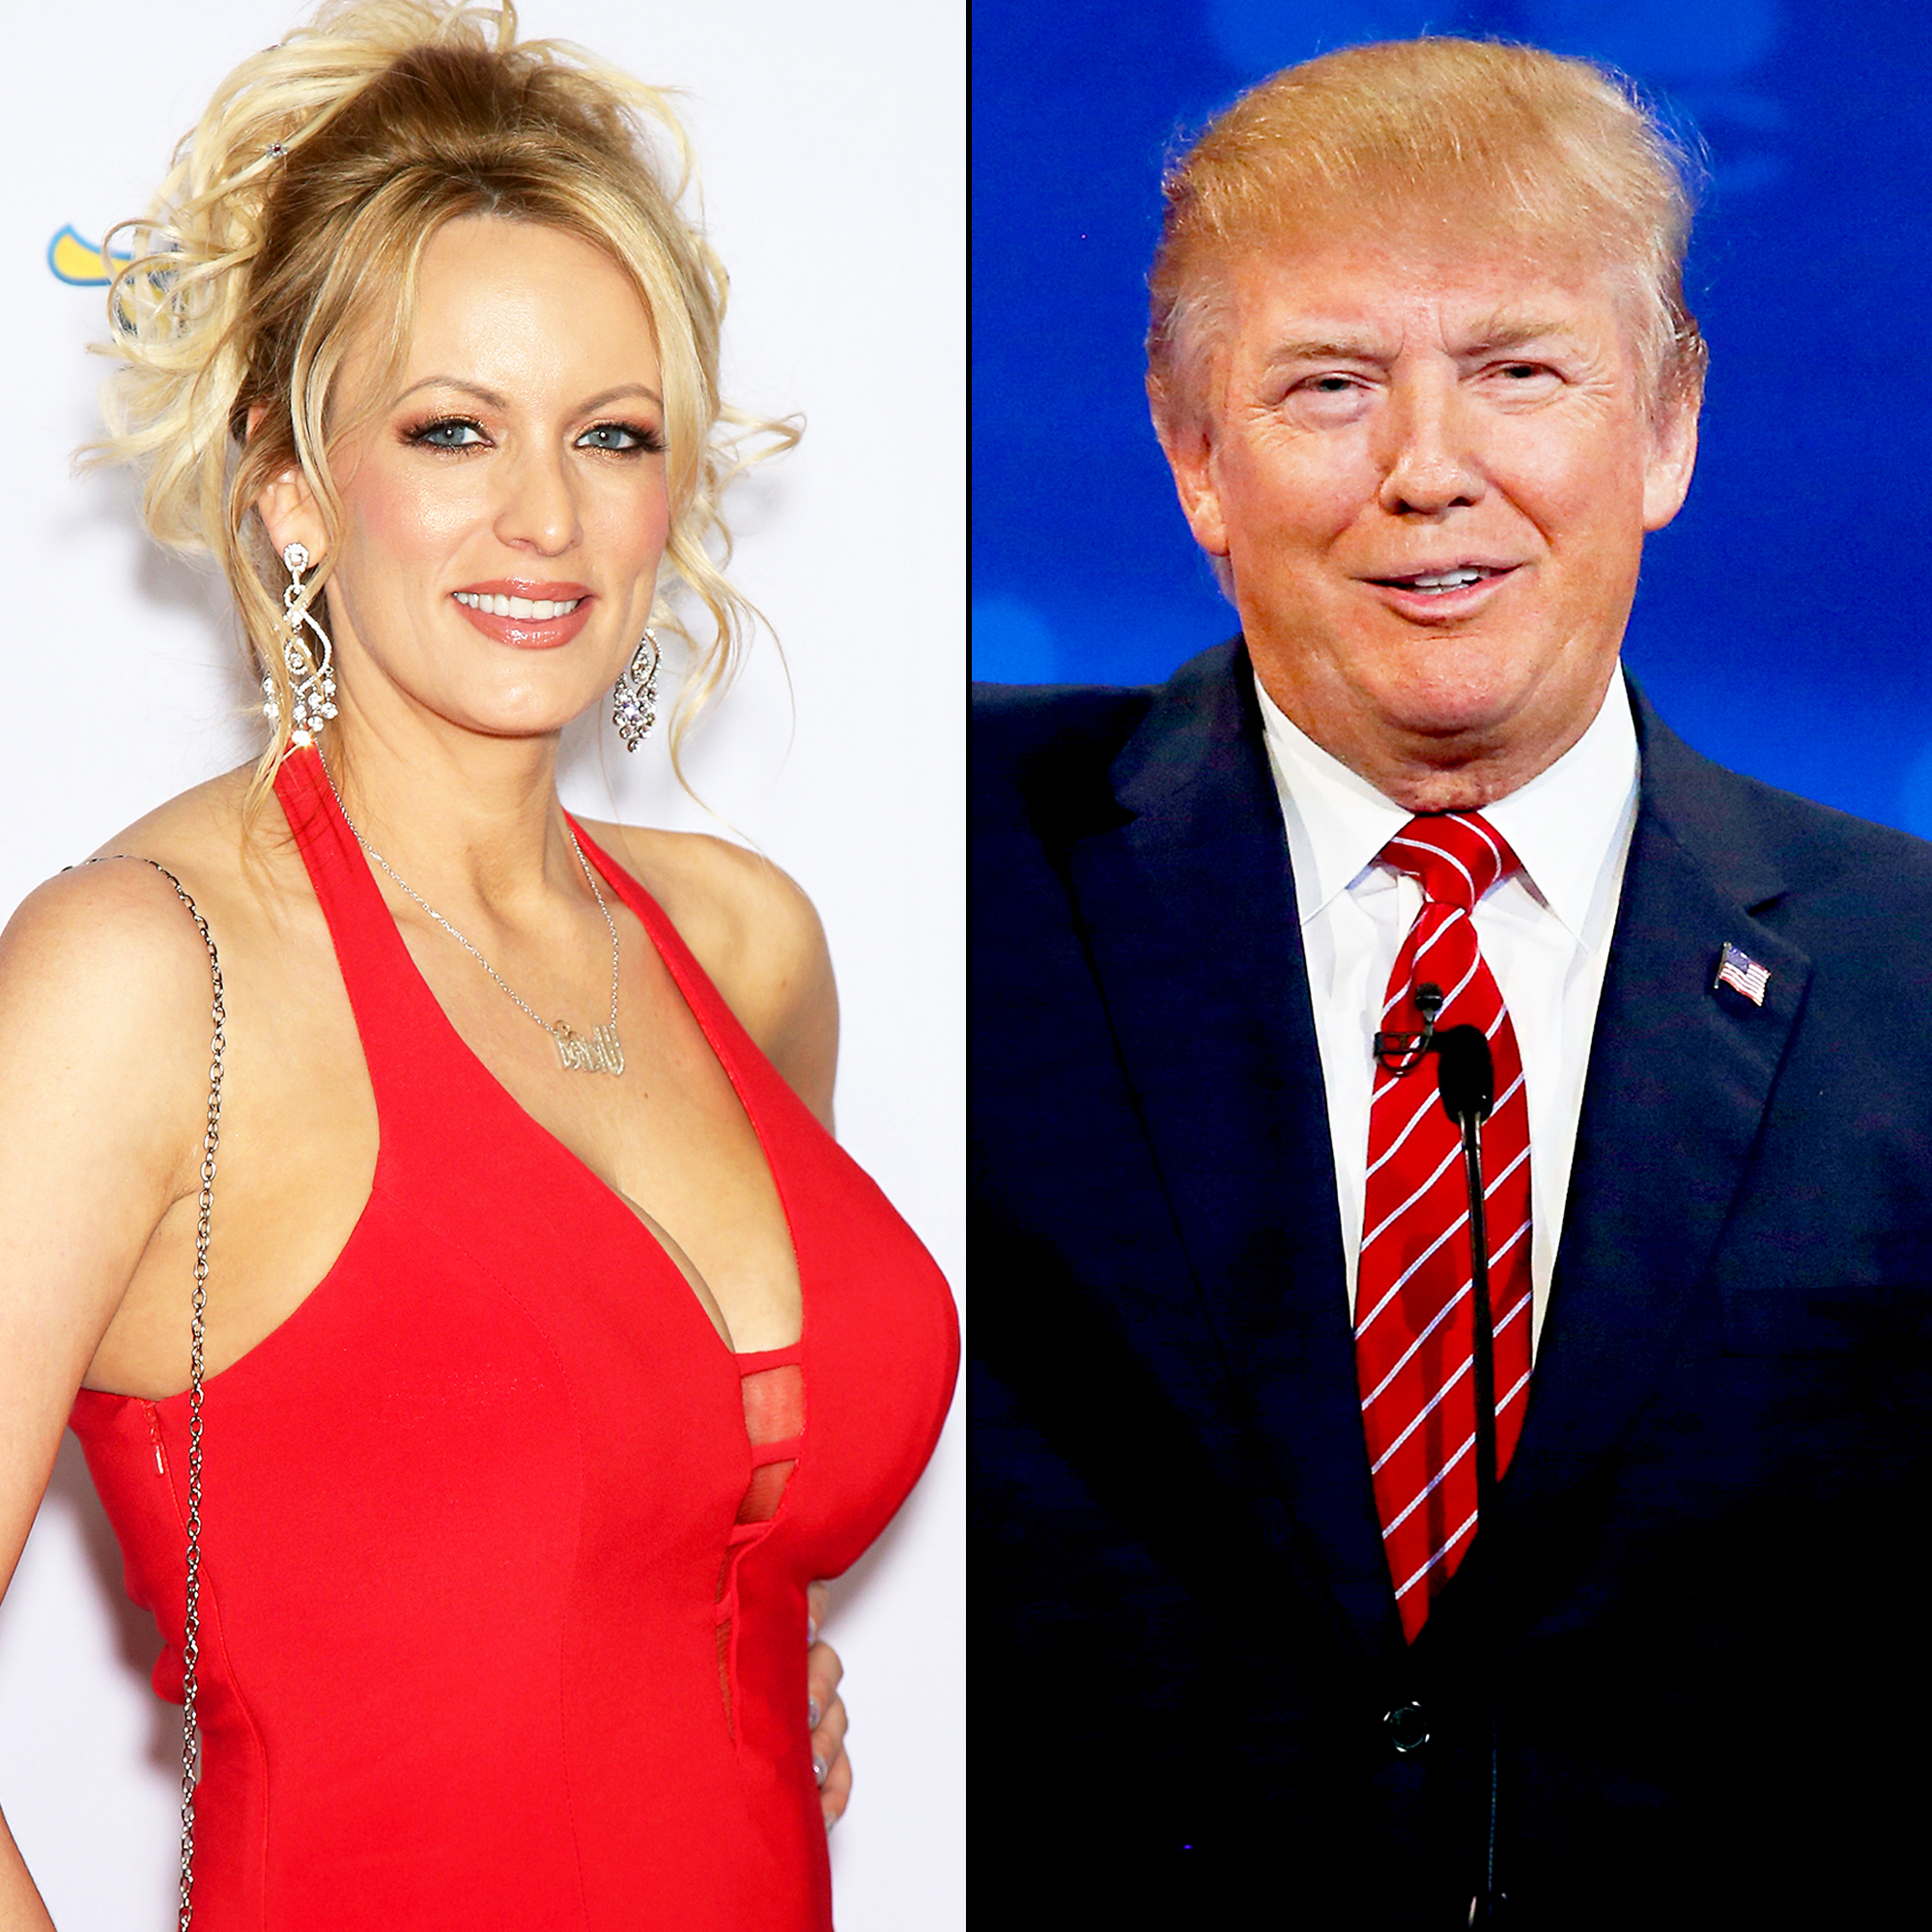 Porn actress Stormy Daniels physically threatened over Trump affair: lawyer